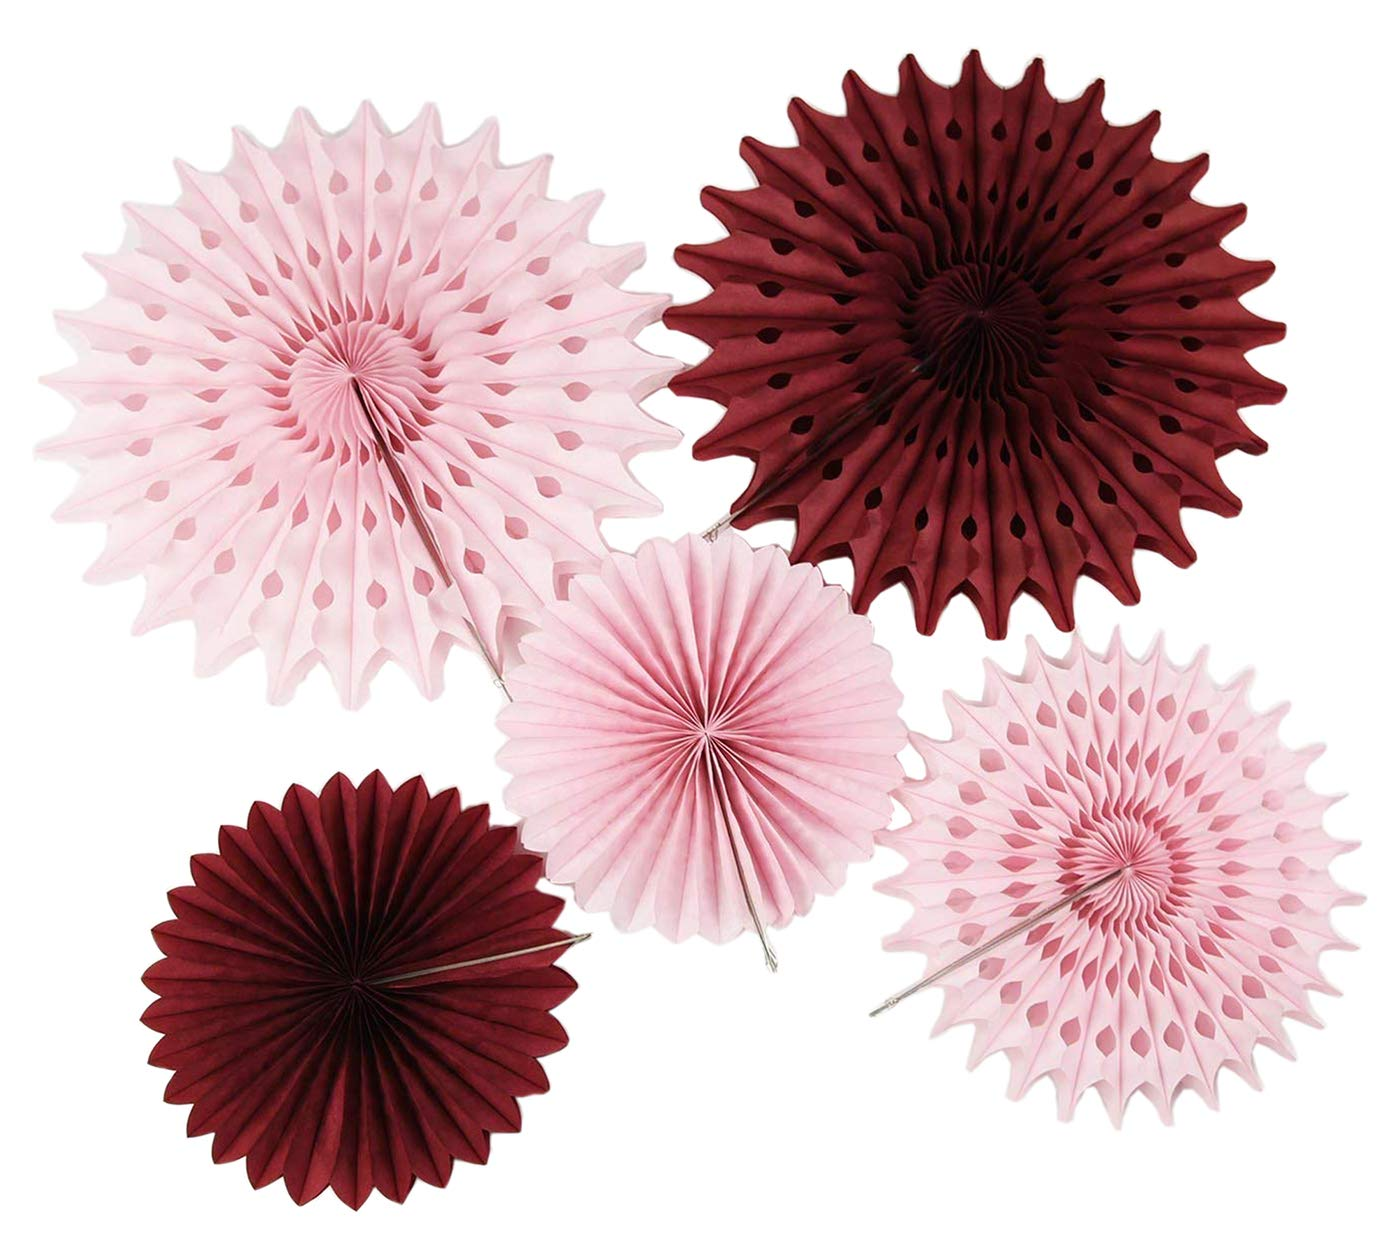 Burgundy Pink Bridal Shower Decorations Pinwheels Paper Fan 7pcs Burgundy Cream Pink Tissue Paper Fans Tissue Paper Flower Burgundy Birthday Decorations Valentines Bachelorette Party Decorations by Qian's Party